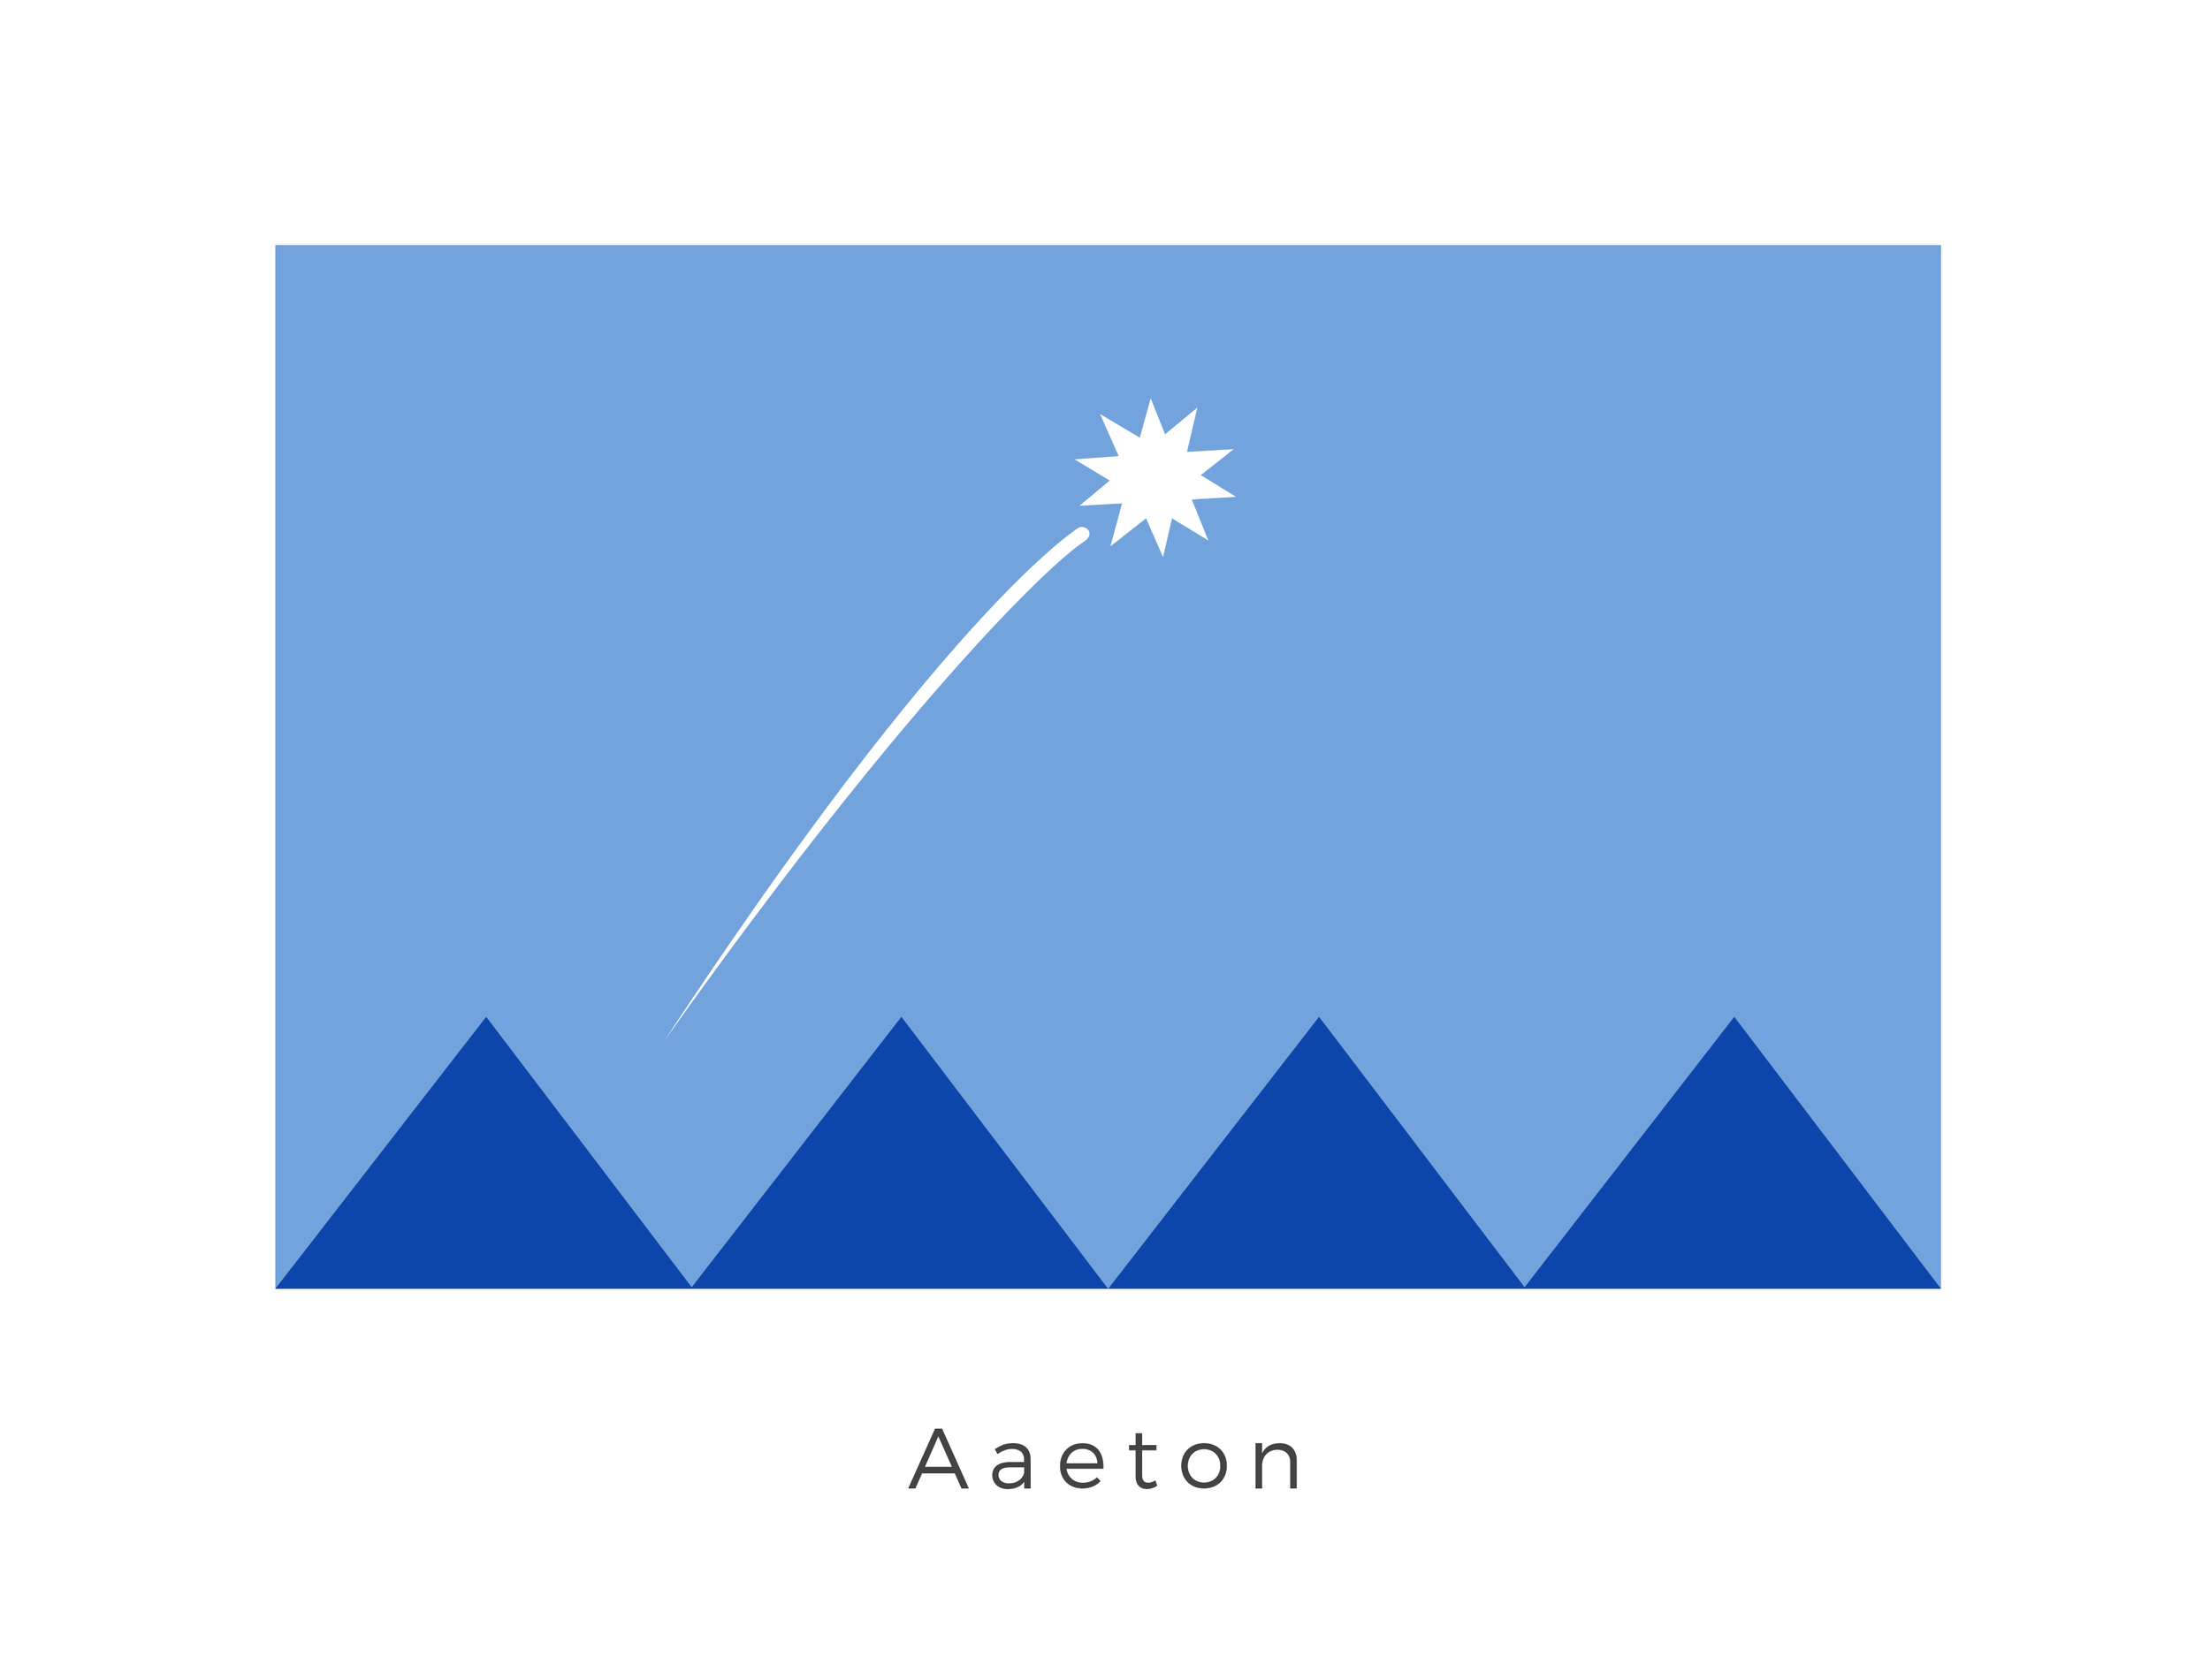 Aaeton  was a planet of the Aaeton system, in the Core Worlds region. As a member world of the Galactic Republic, Aaeton's surface was victim of an Imperial chemical attack during the Cold War between the Republic and Sith Empire. The shooting star graphic and mountain range represents the coming of age tradition of visiting neighbouring planet Ragoon VI. A real privilege as the planet is off limits to all aliens except the Jedi. The deep blue colour of the mountains symbolised the planets ties to the Galactic Republic.